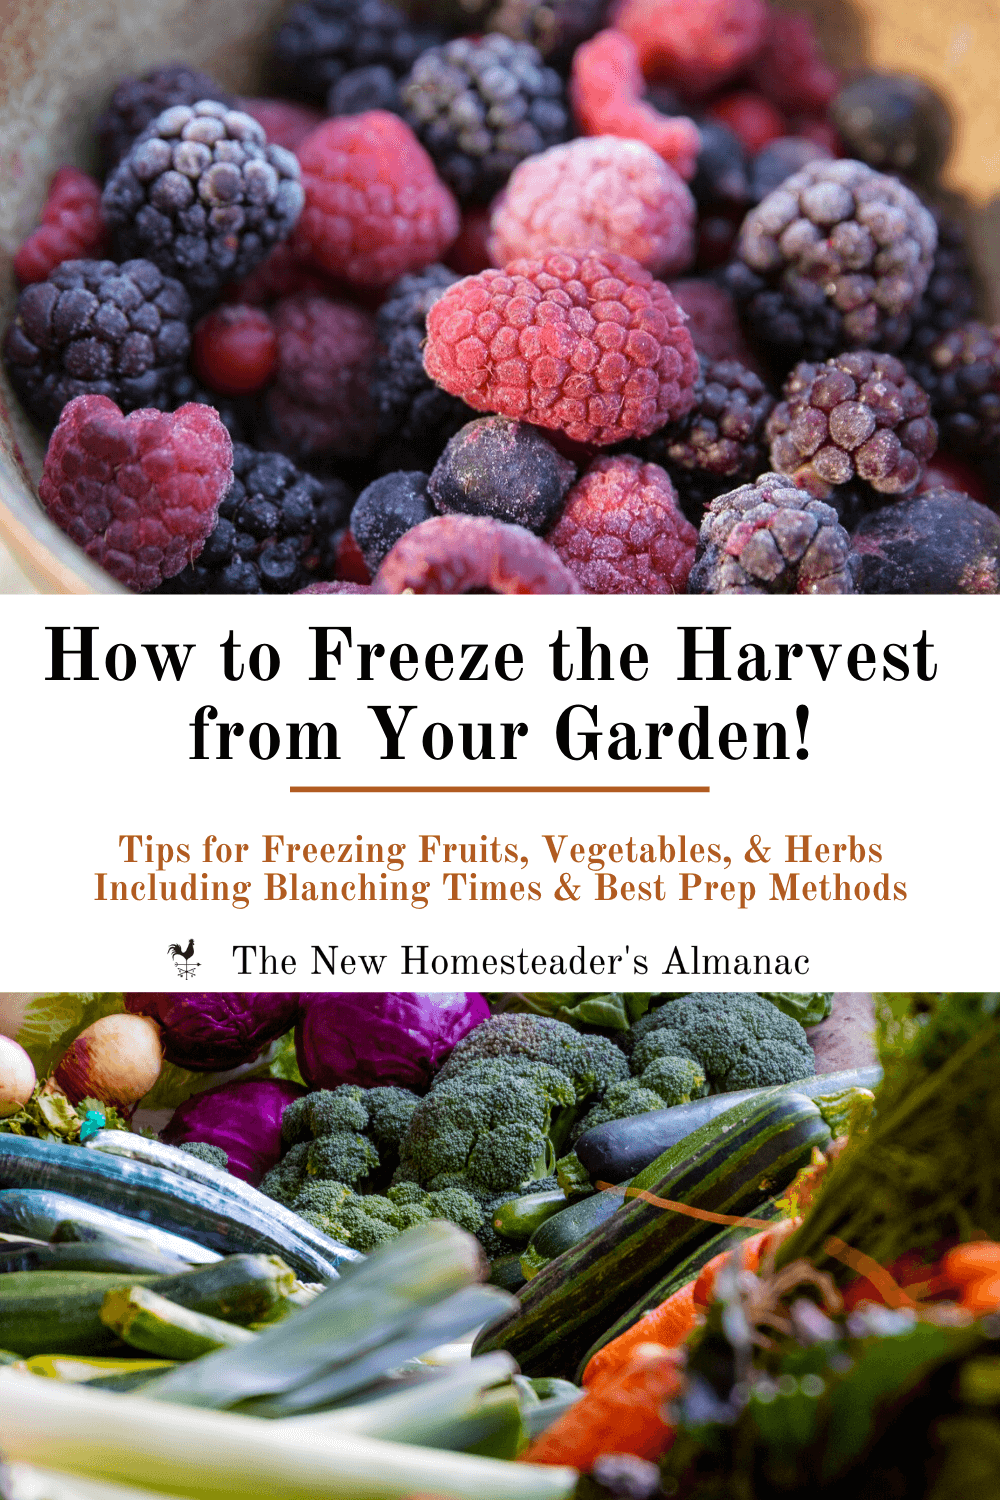 How to Freeze the Harvest from Your Garden